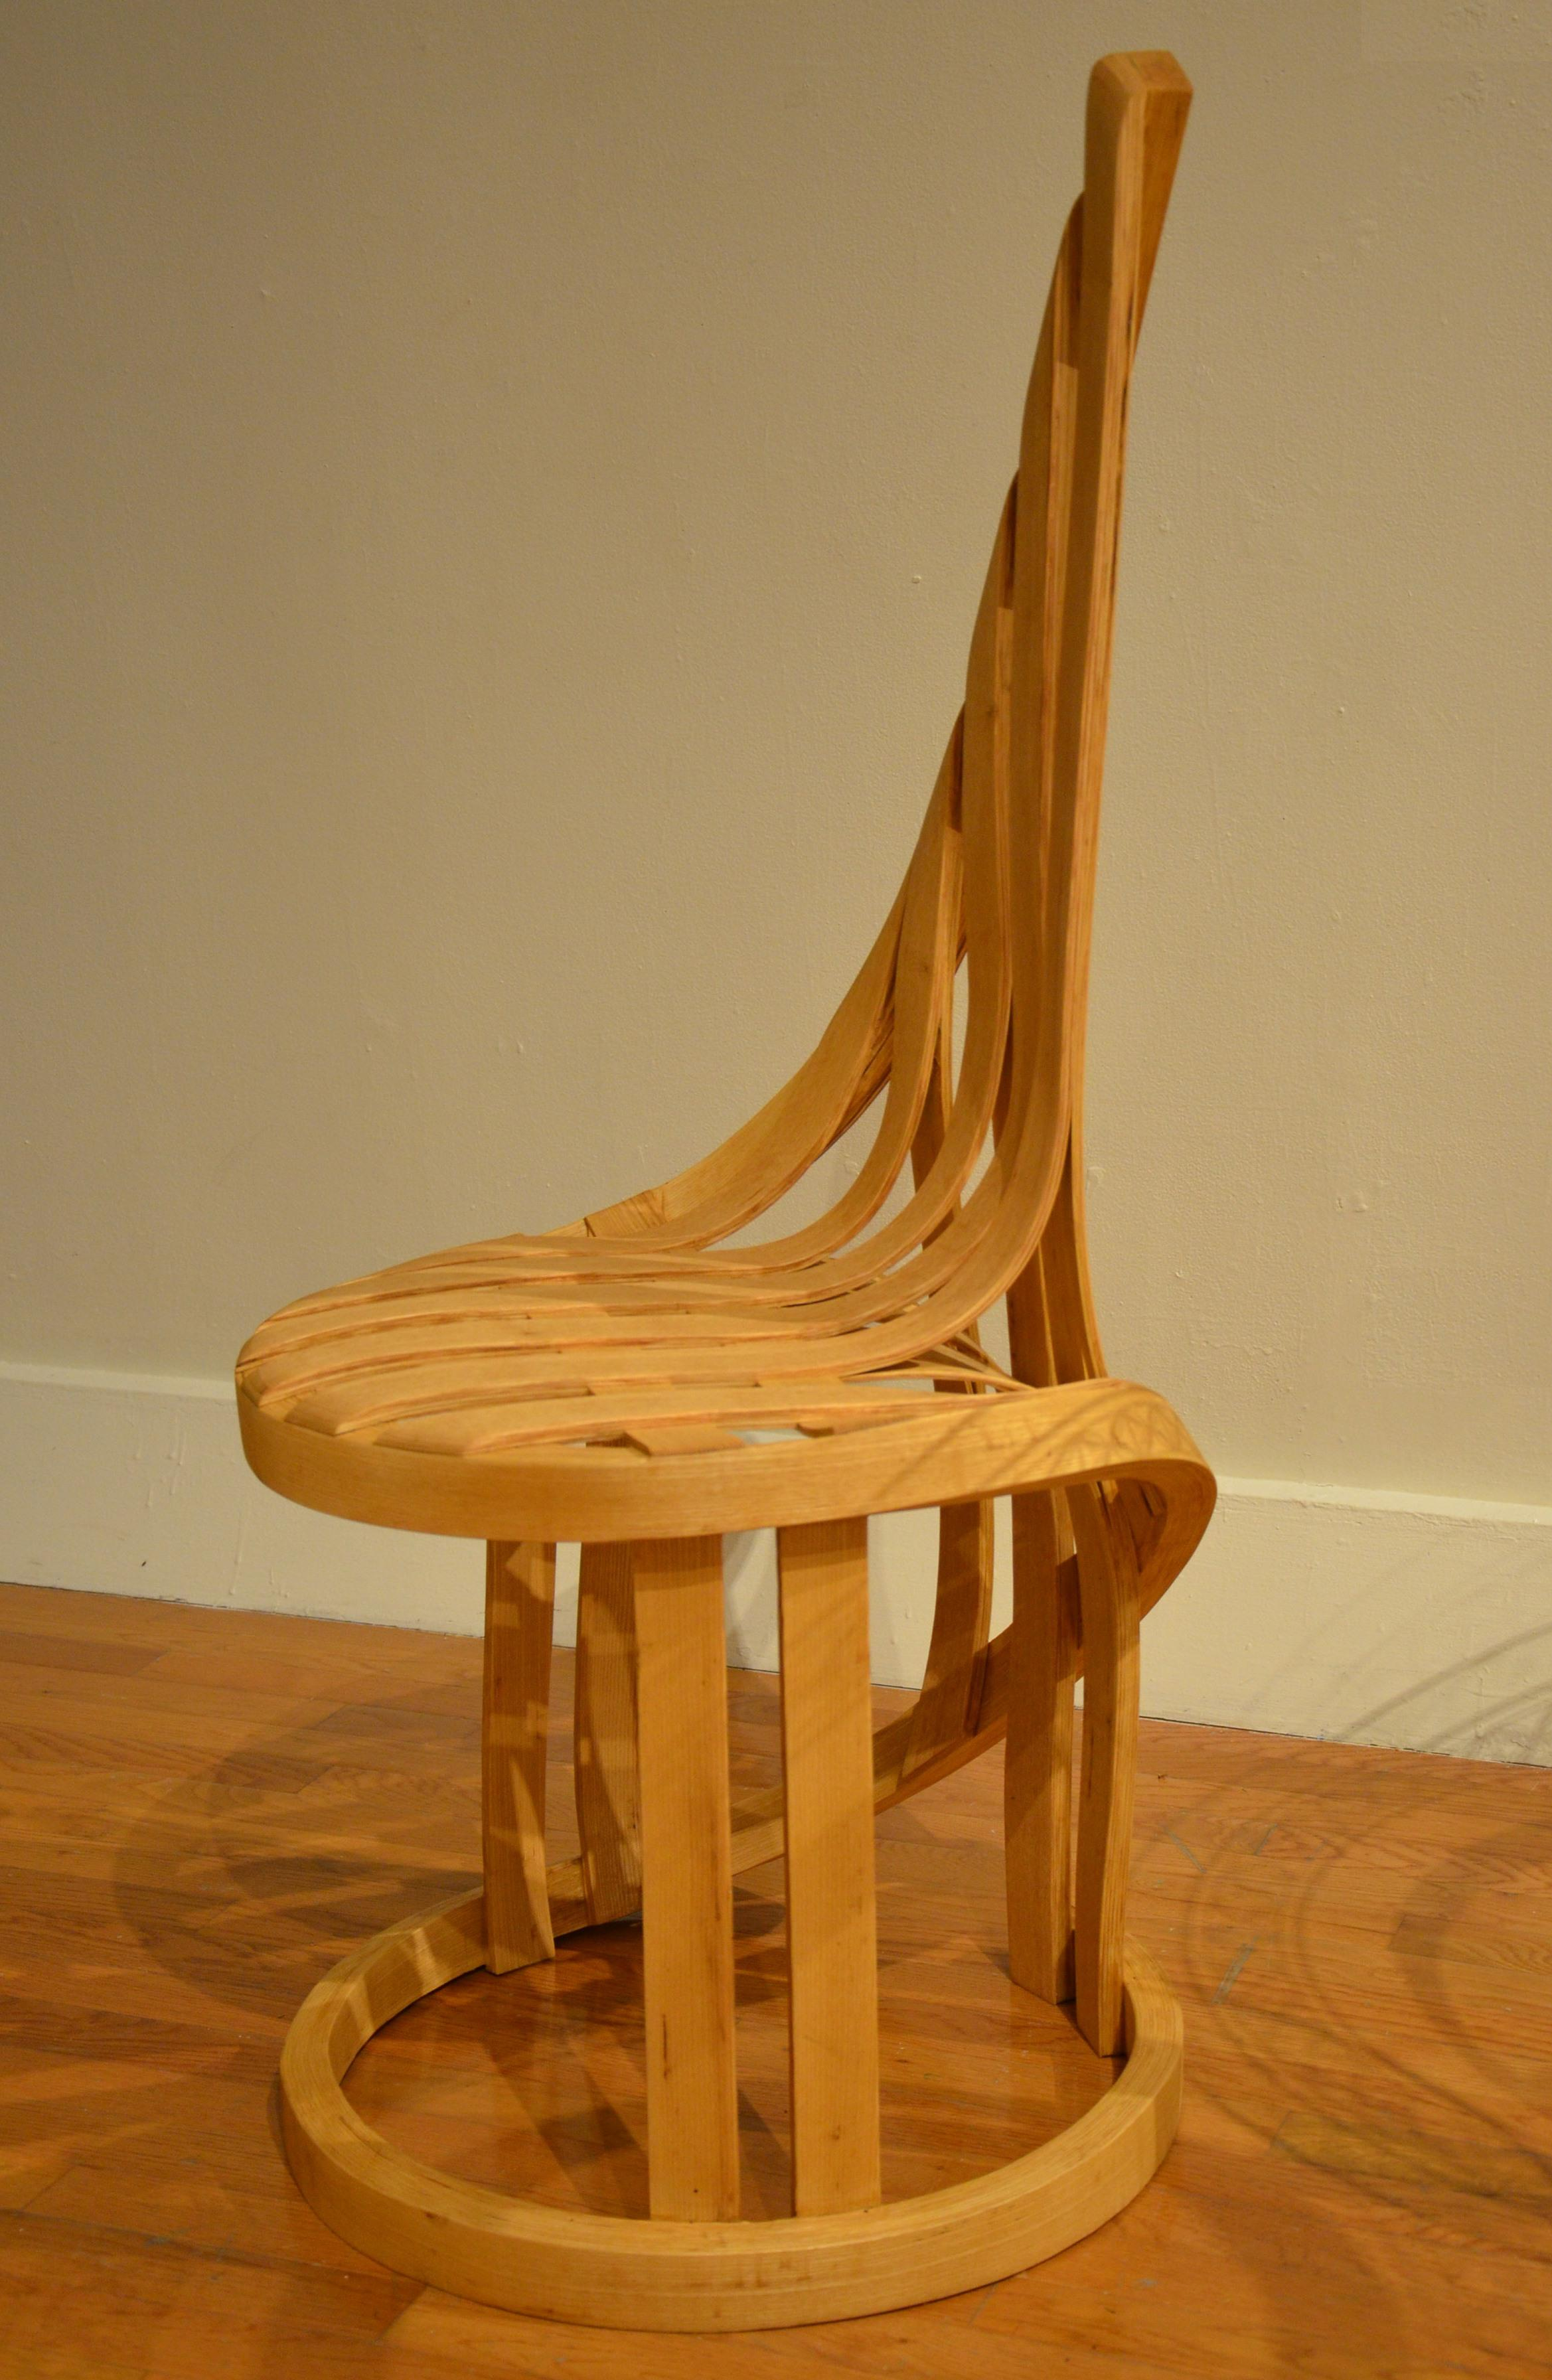 Mānoa Chair by Architecture doctoral candidate wins woodshow